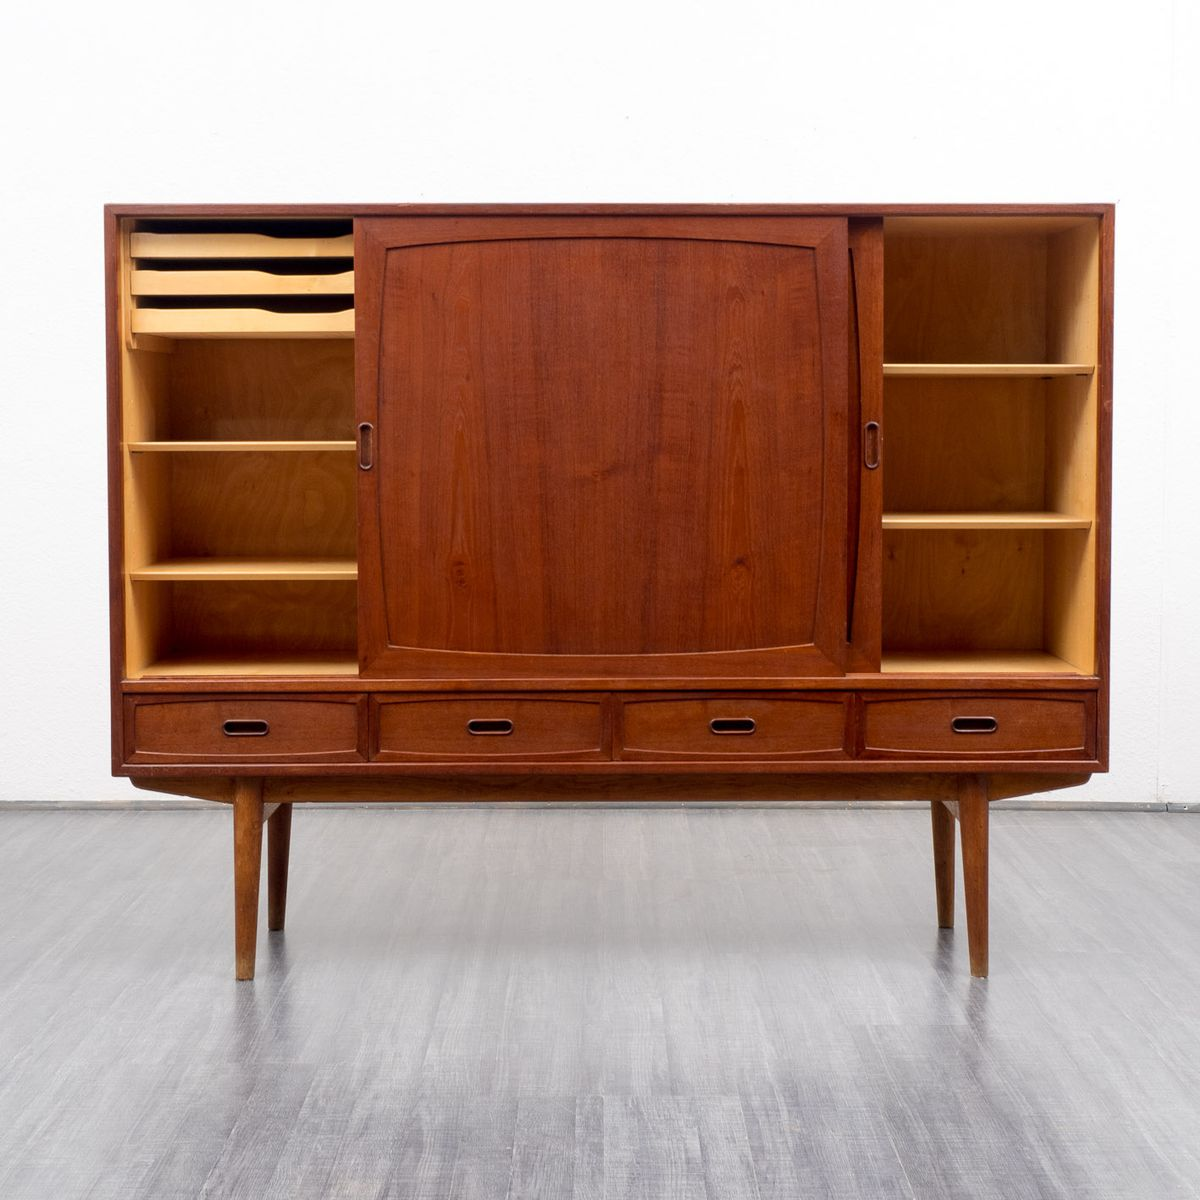 skandinavisches mid century teakholz sideboard 1960er bei. Black Bedroom Furniture Sets. Home Design Ideas